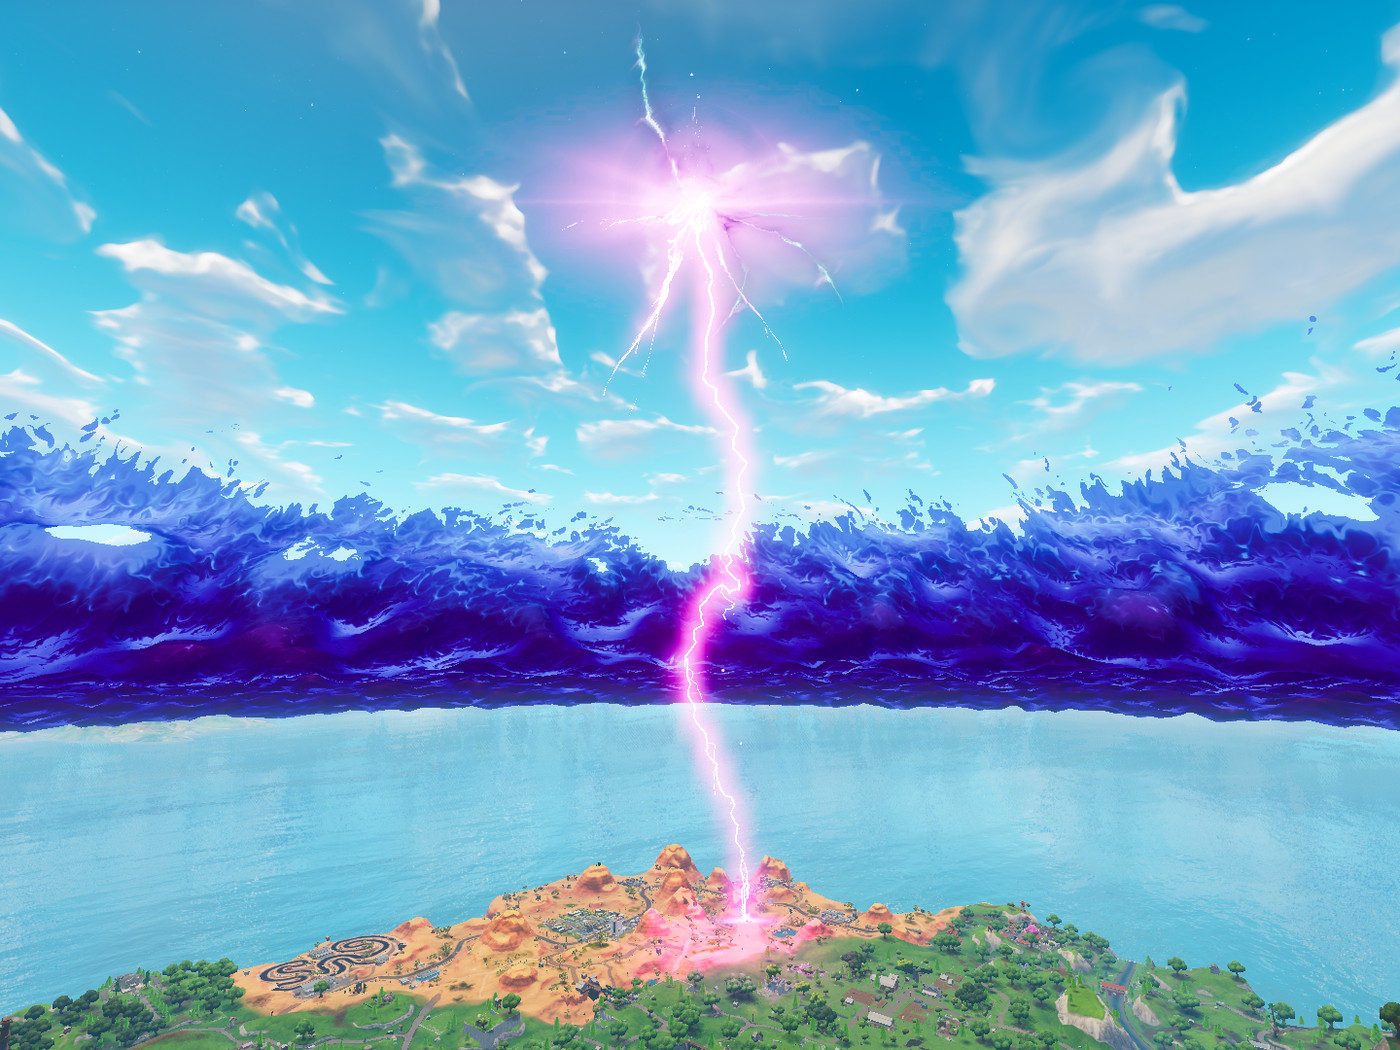 Fortnite lightning bolts: What do they mean? - Polygon